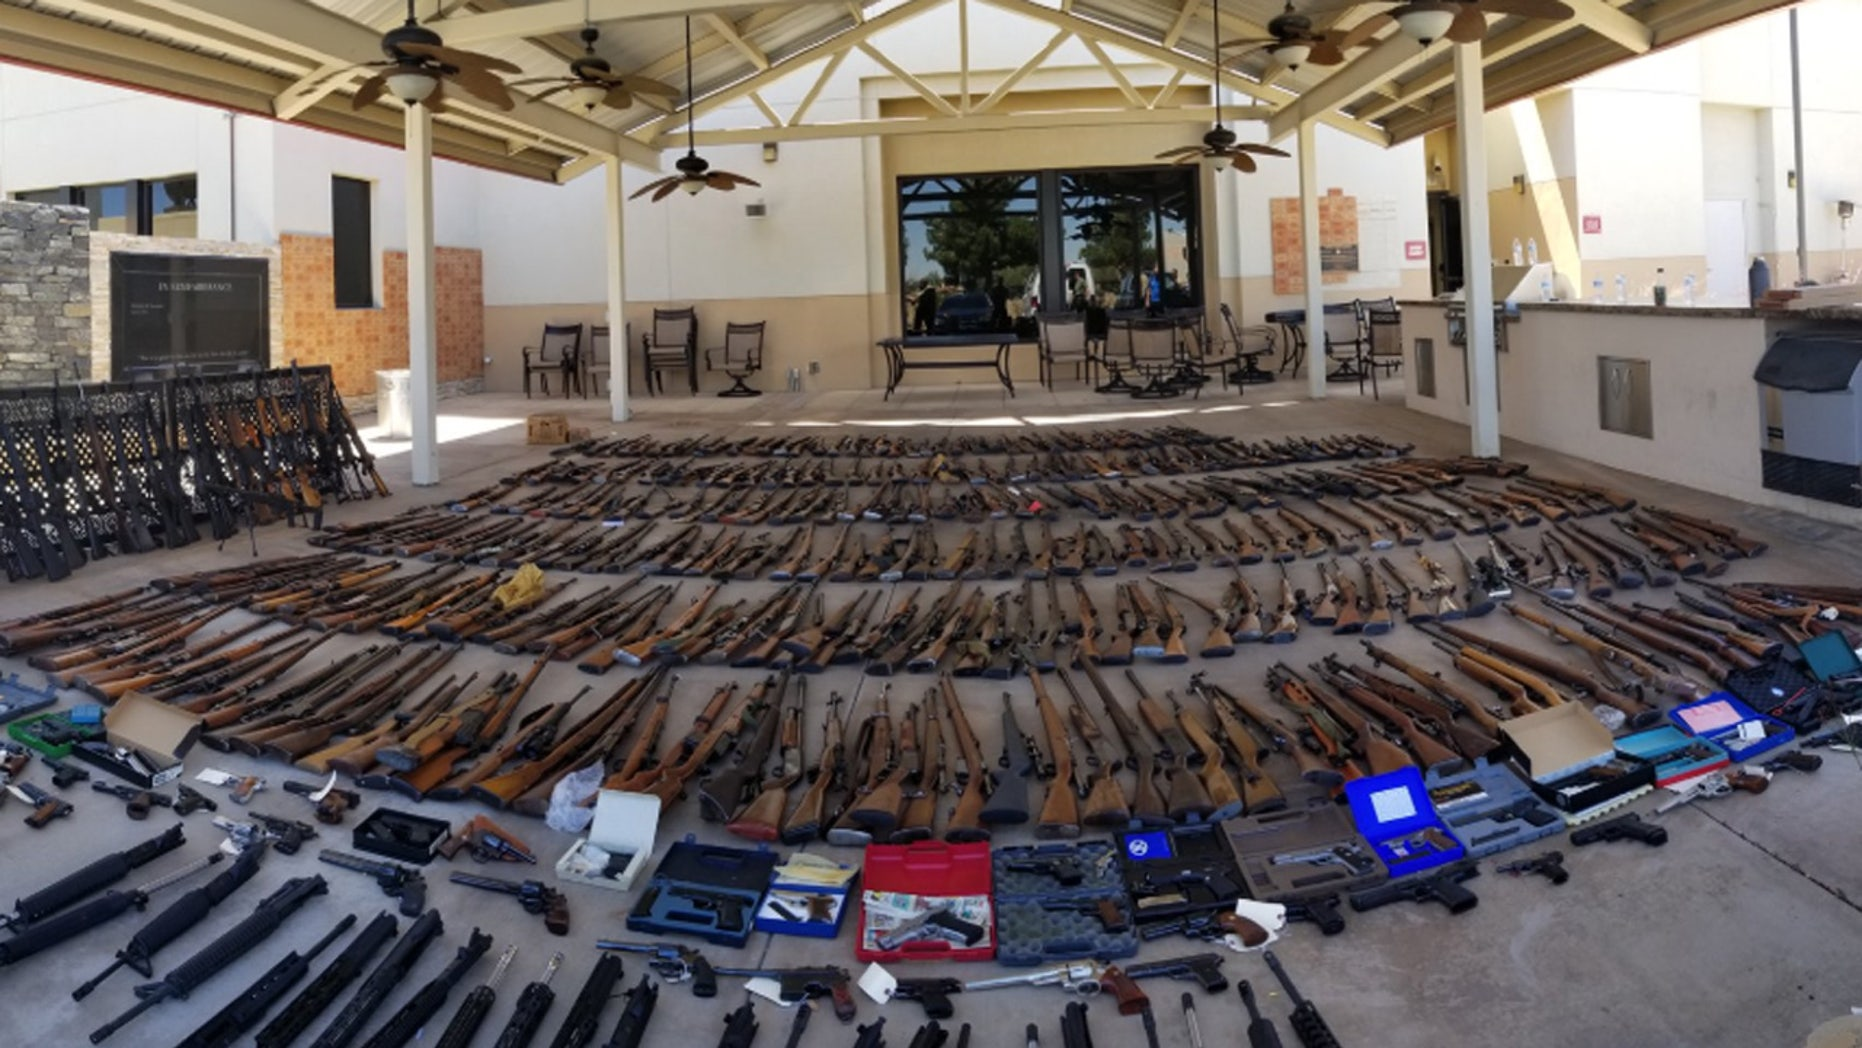 Authorities have seized more than 550 guns at two Southern California homes